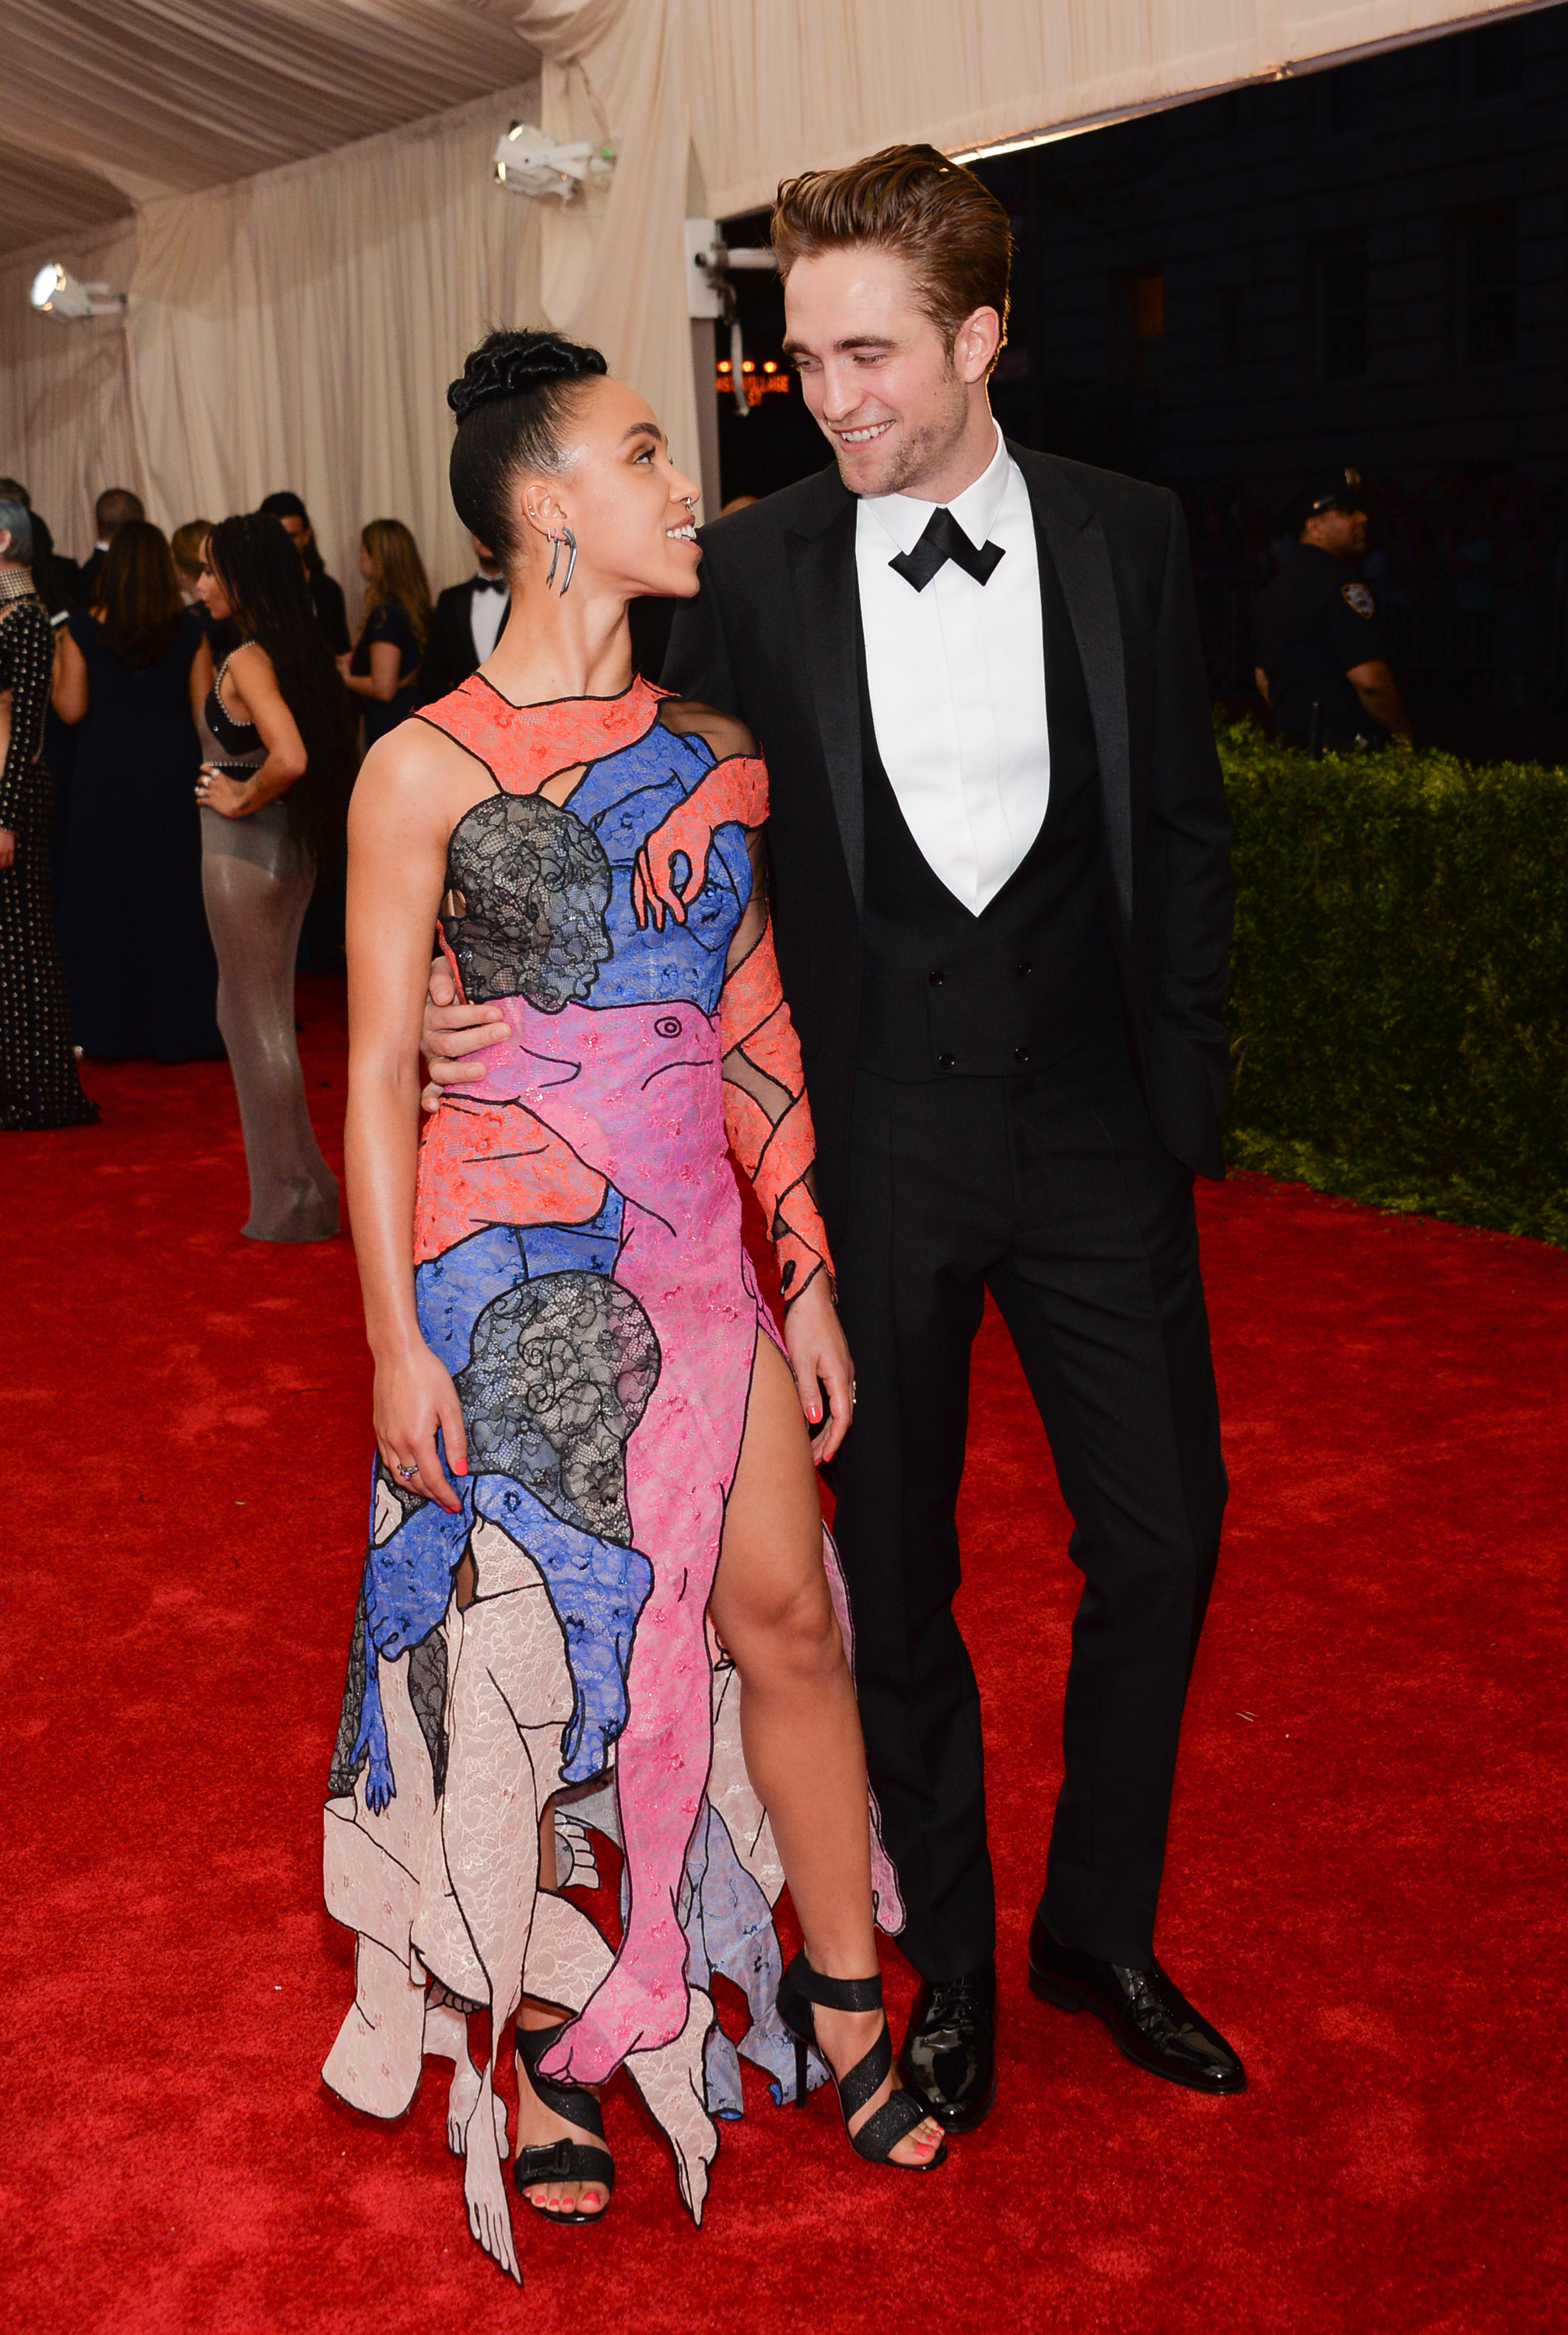 Robert Pattinson and FKA Twigs are 'excited to be married:' Source